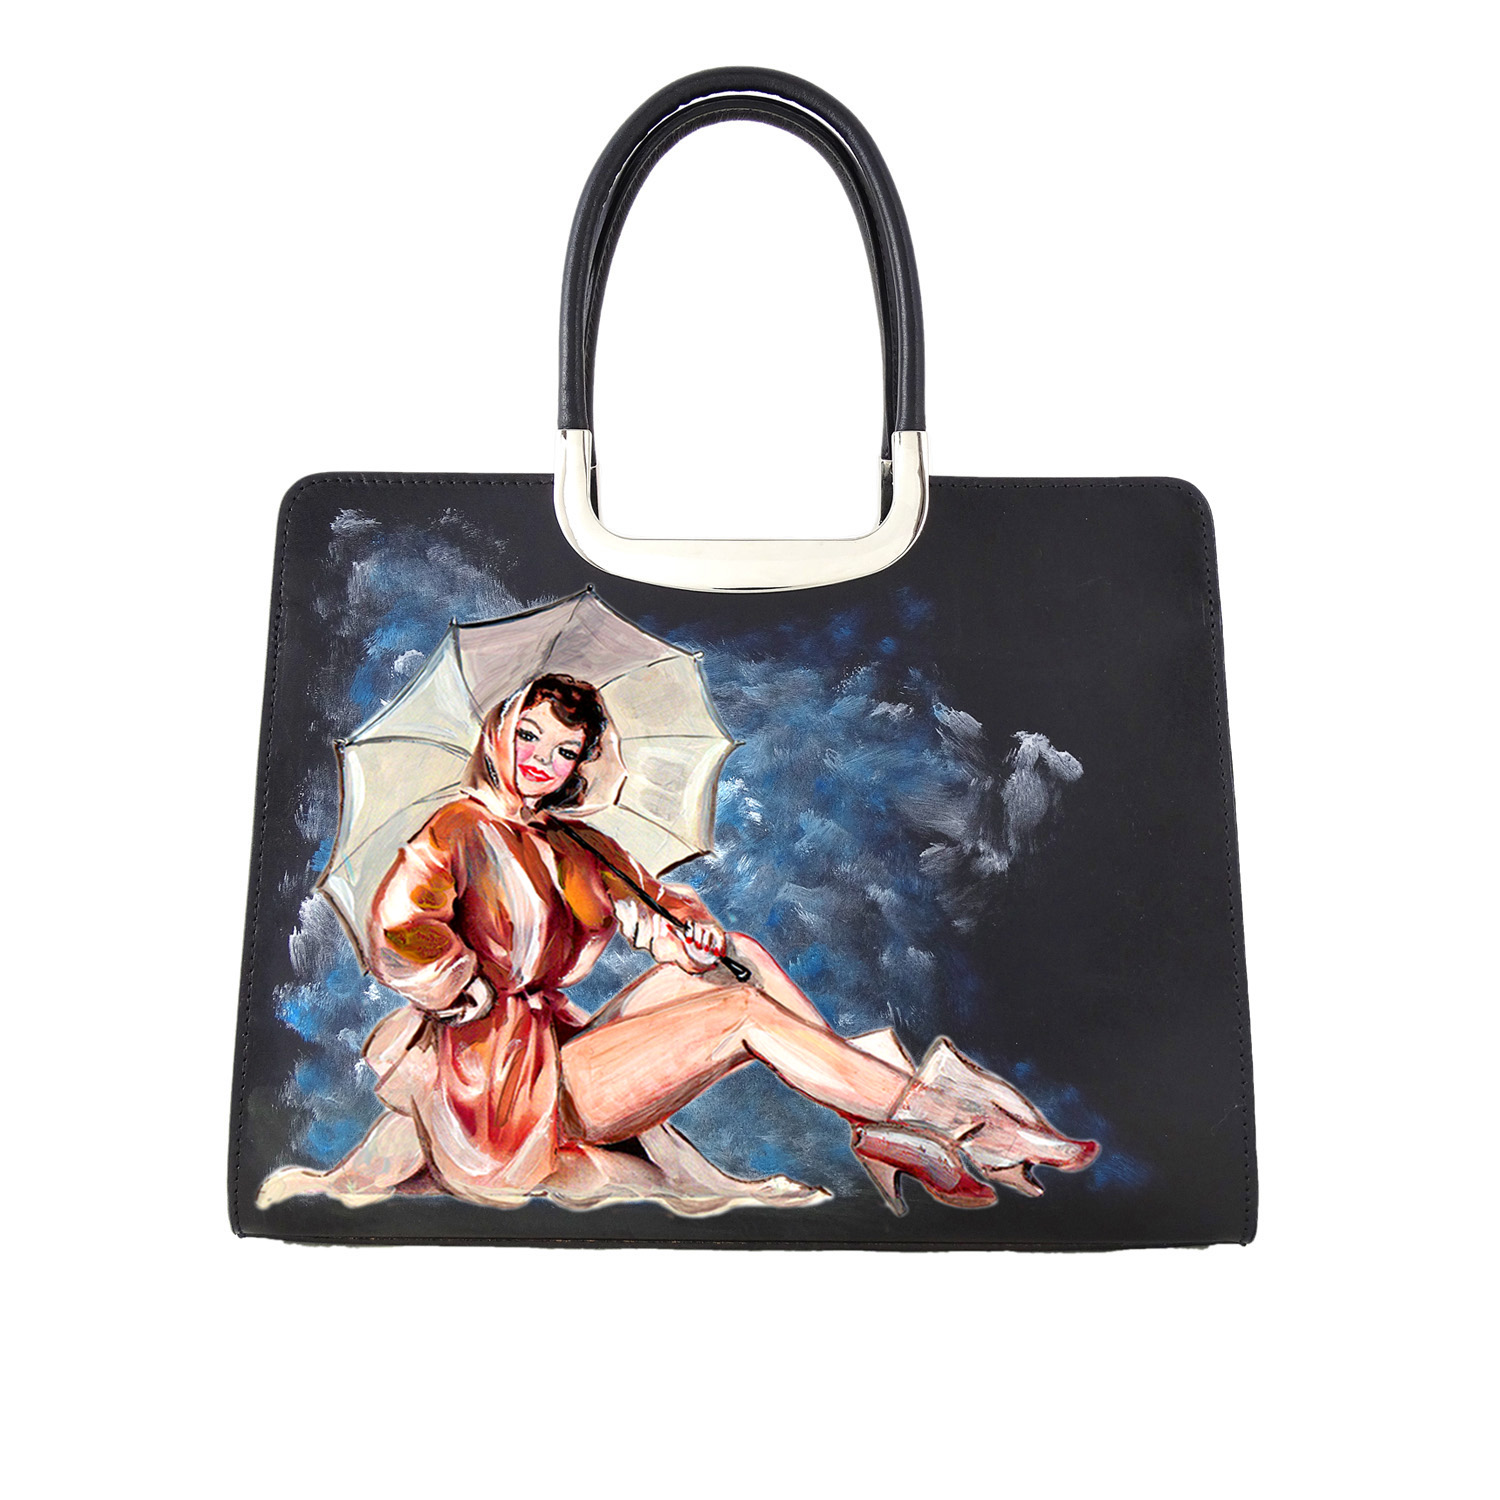 Borsa dipinta a mano – Girl with umbrella